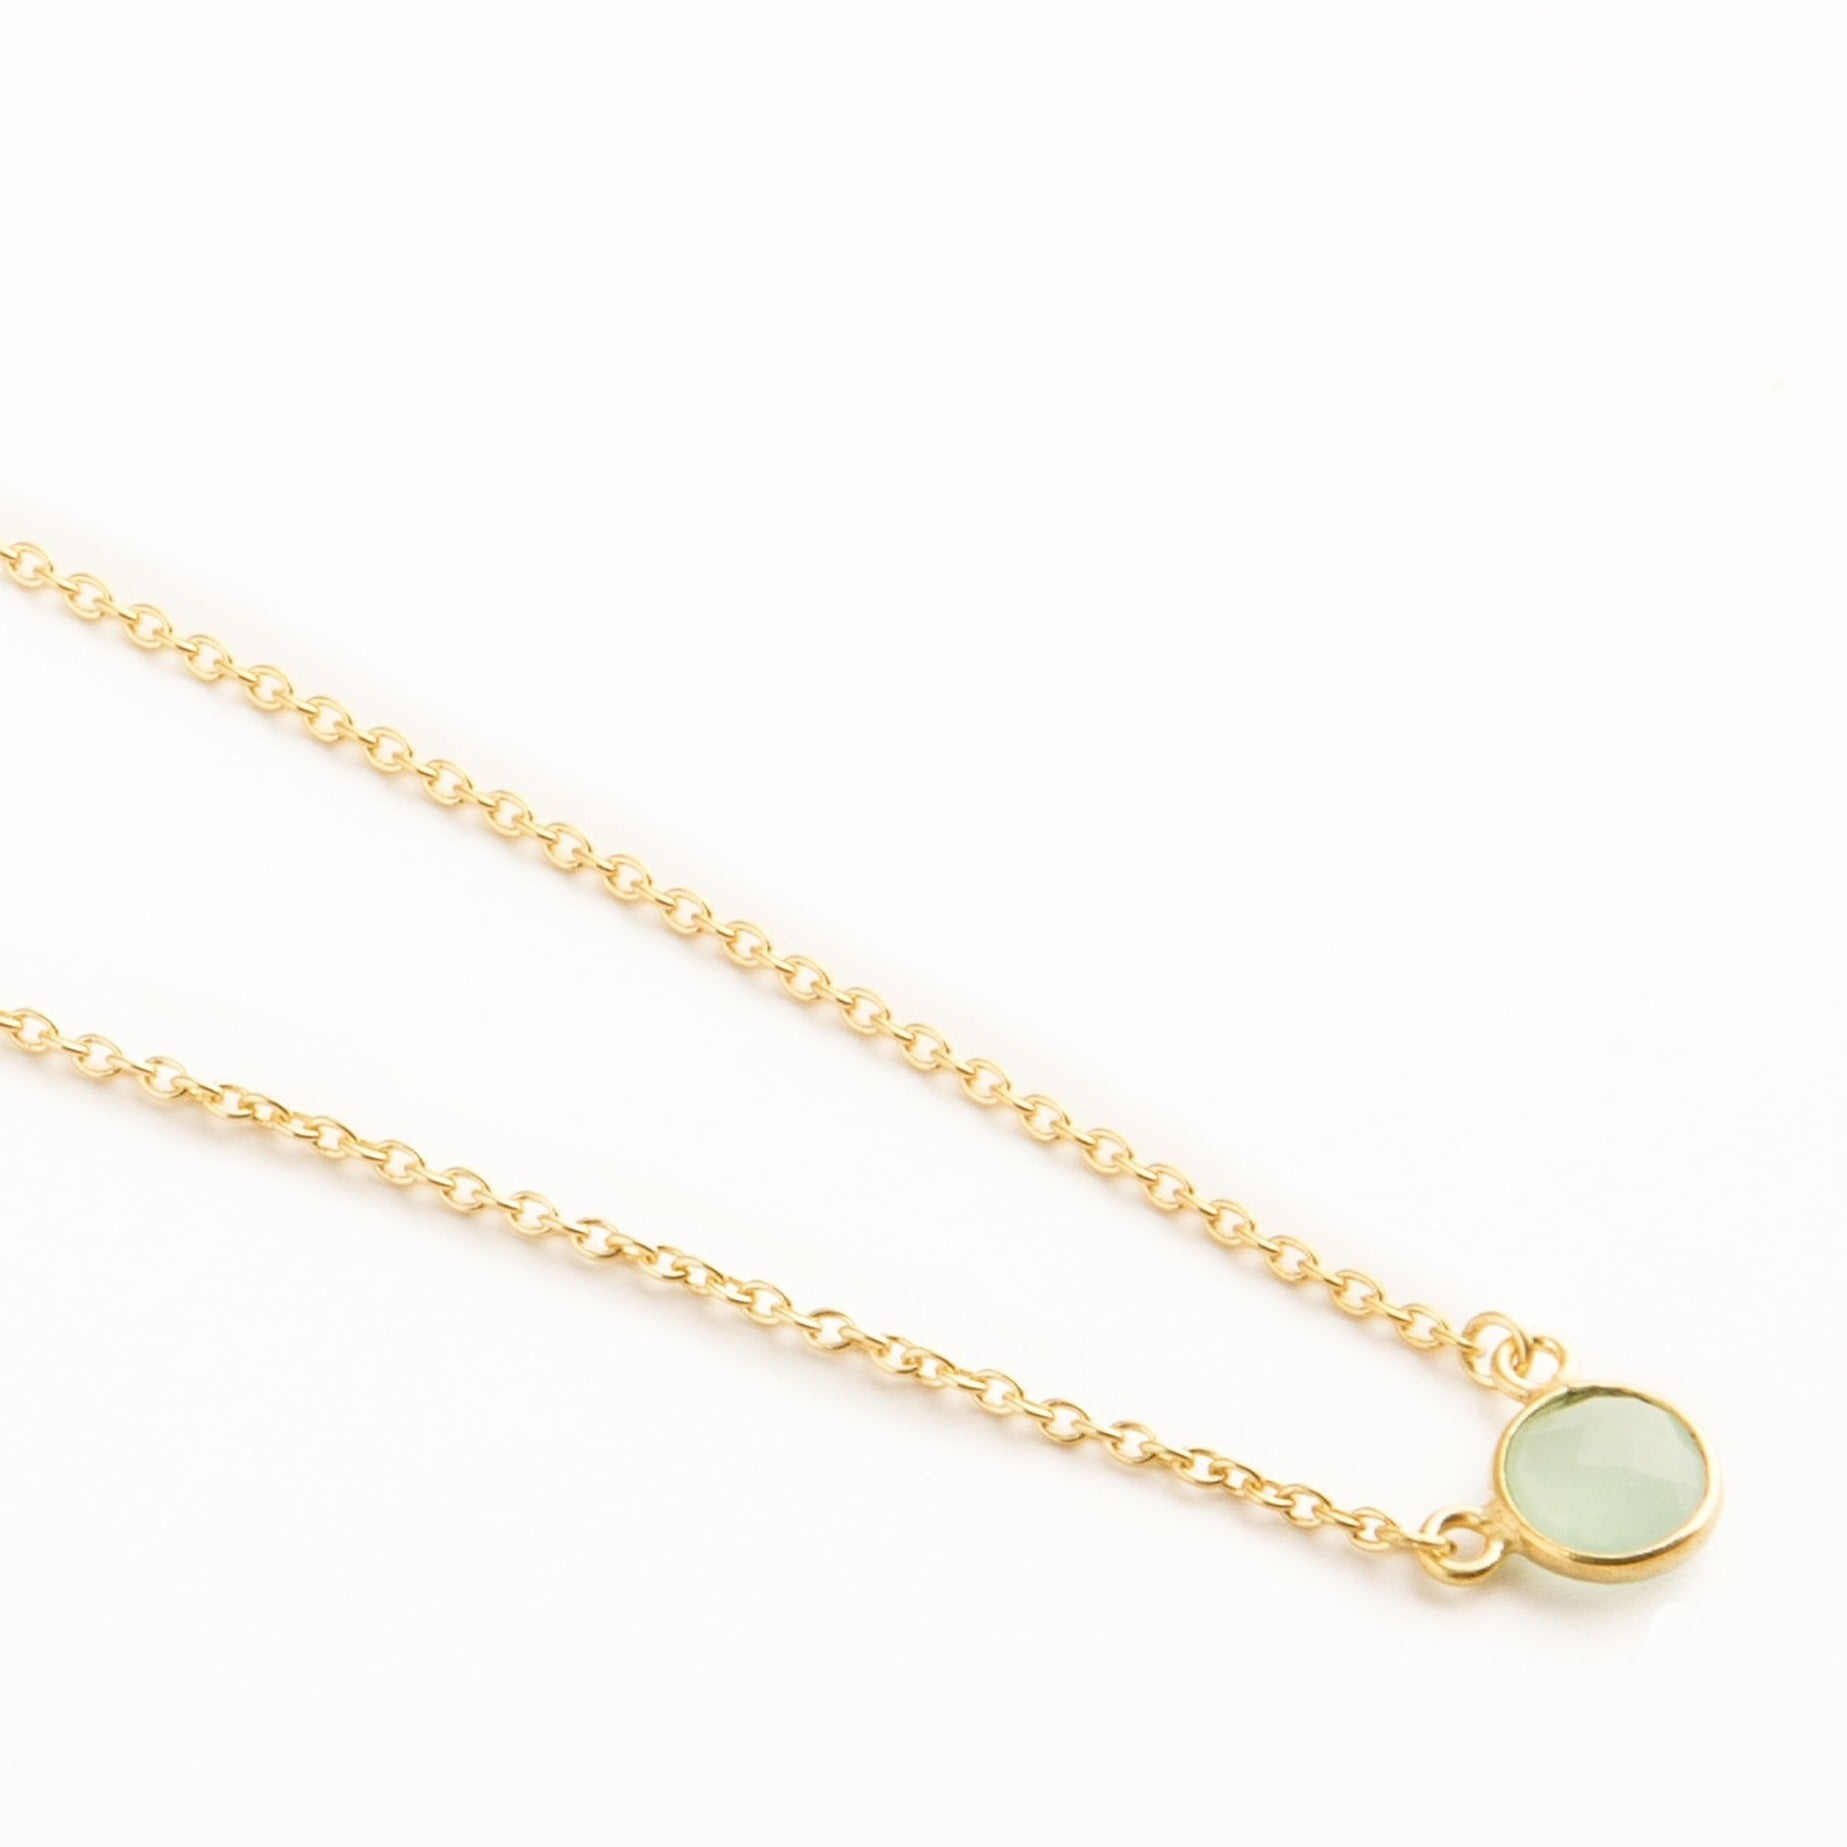 Adele mini gold-plated silver round chain in Aqua - Neckpieces